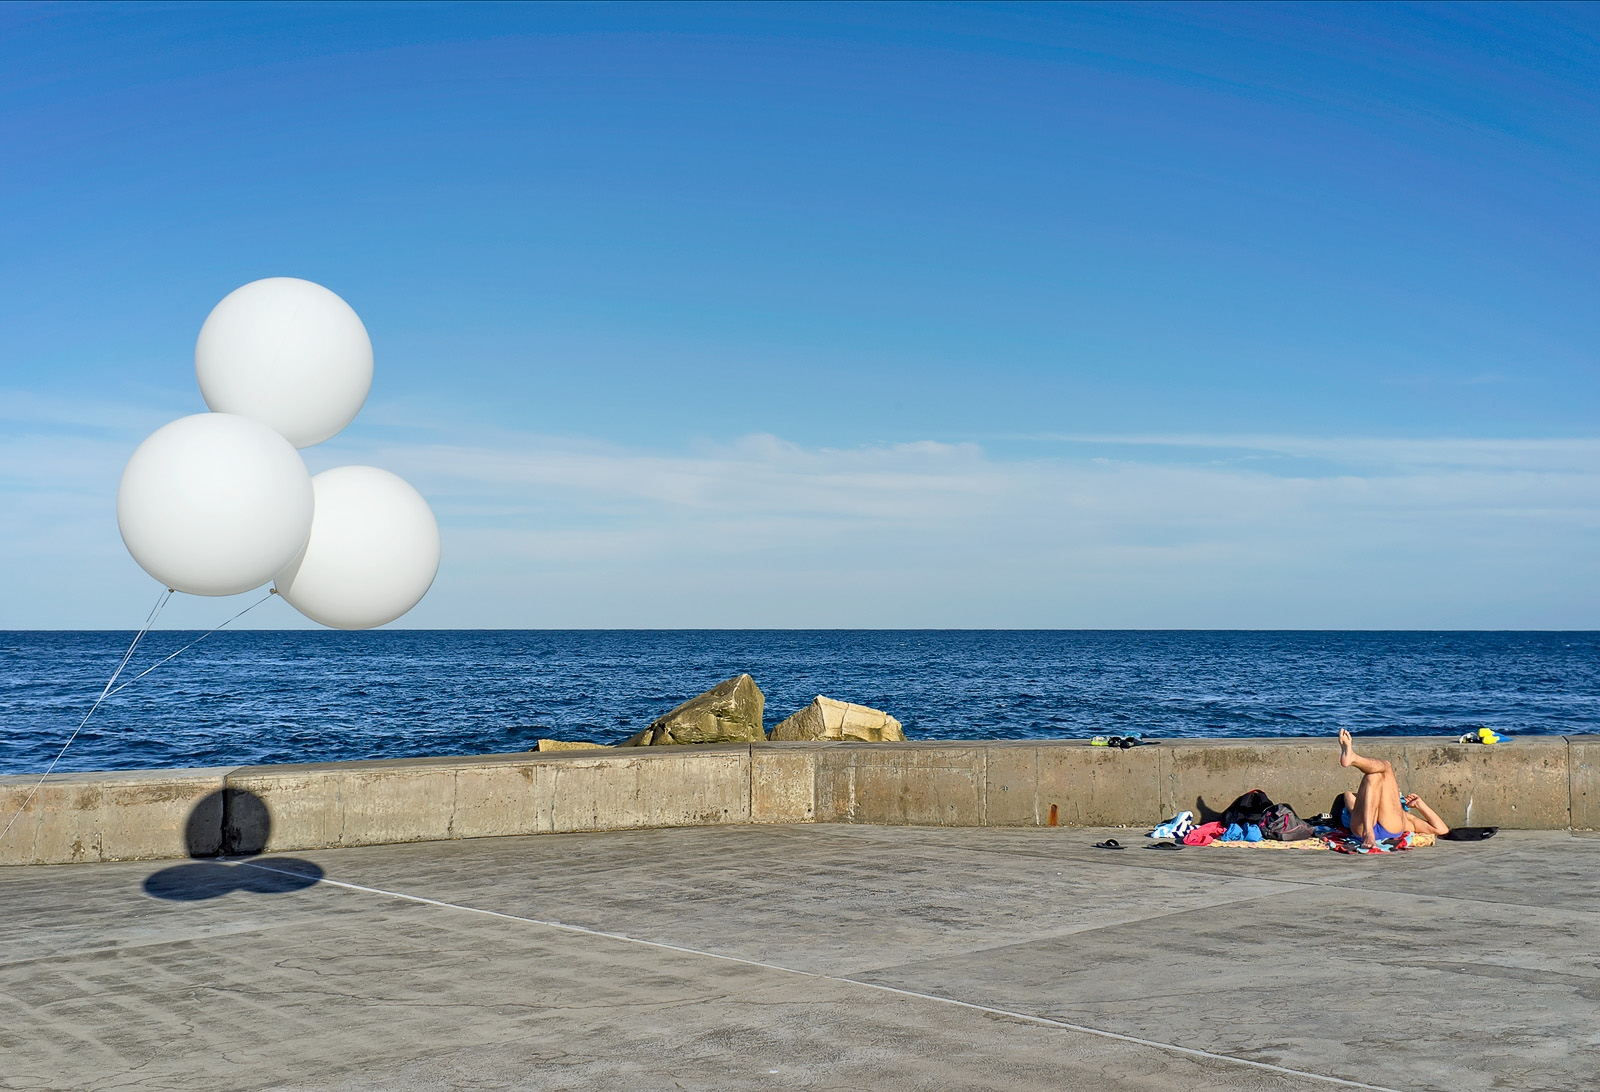 Clovelly beach, balloons